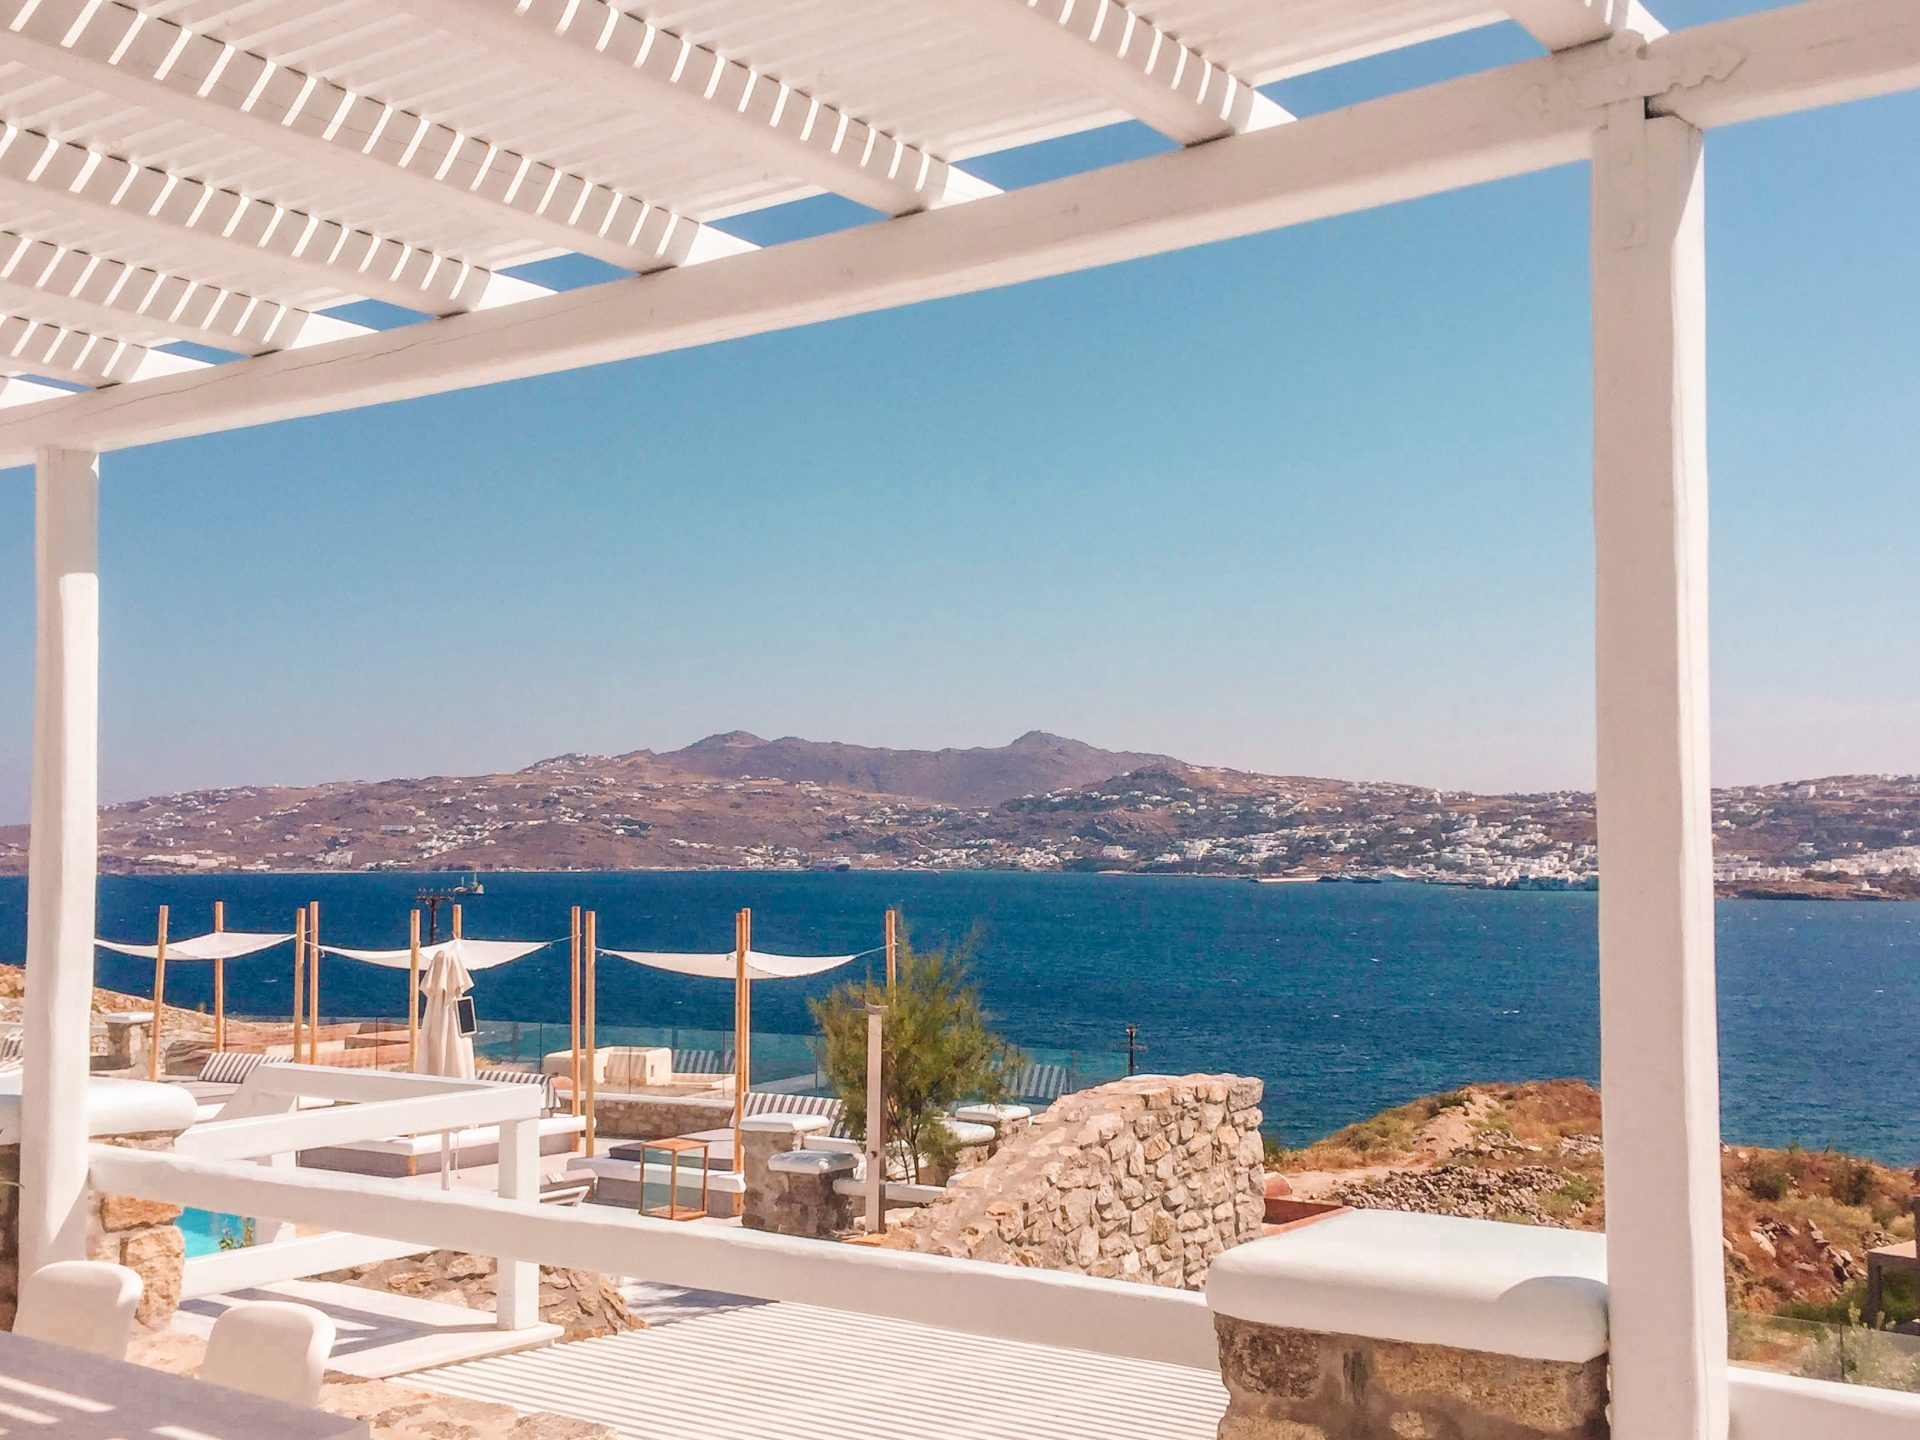 Mykonos No5 hotel with the pool looking out into the ocean and Mykonos town across the bay